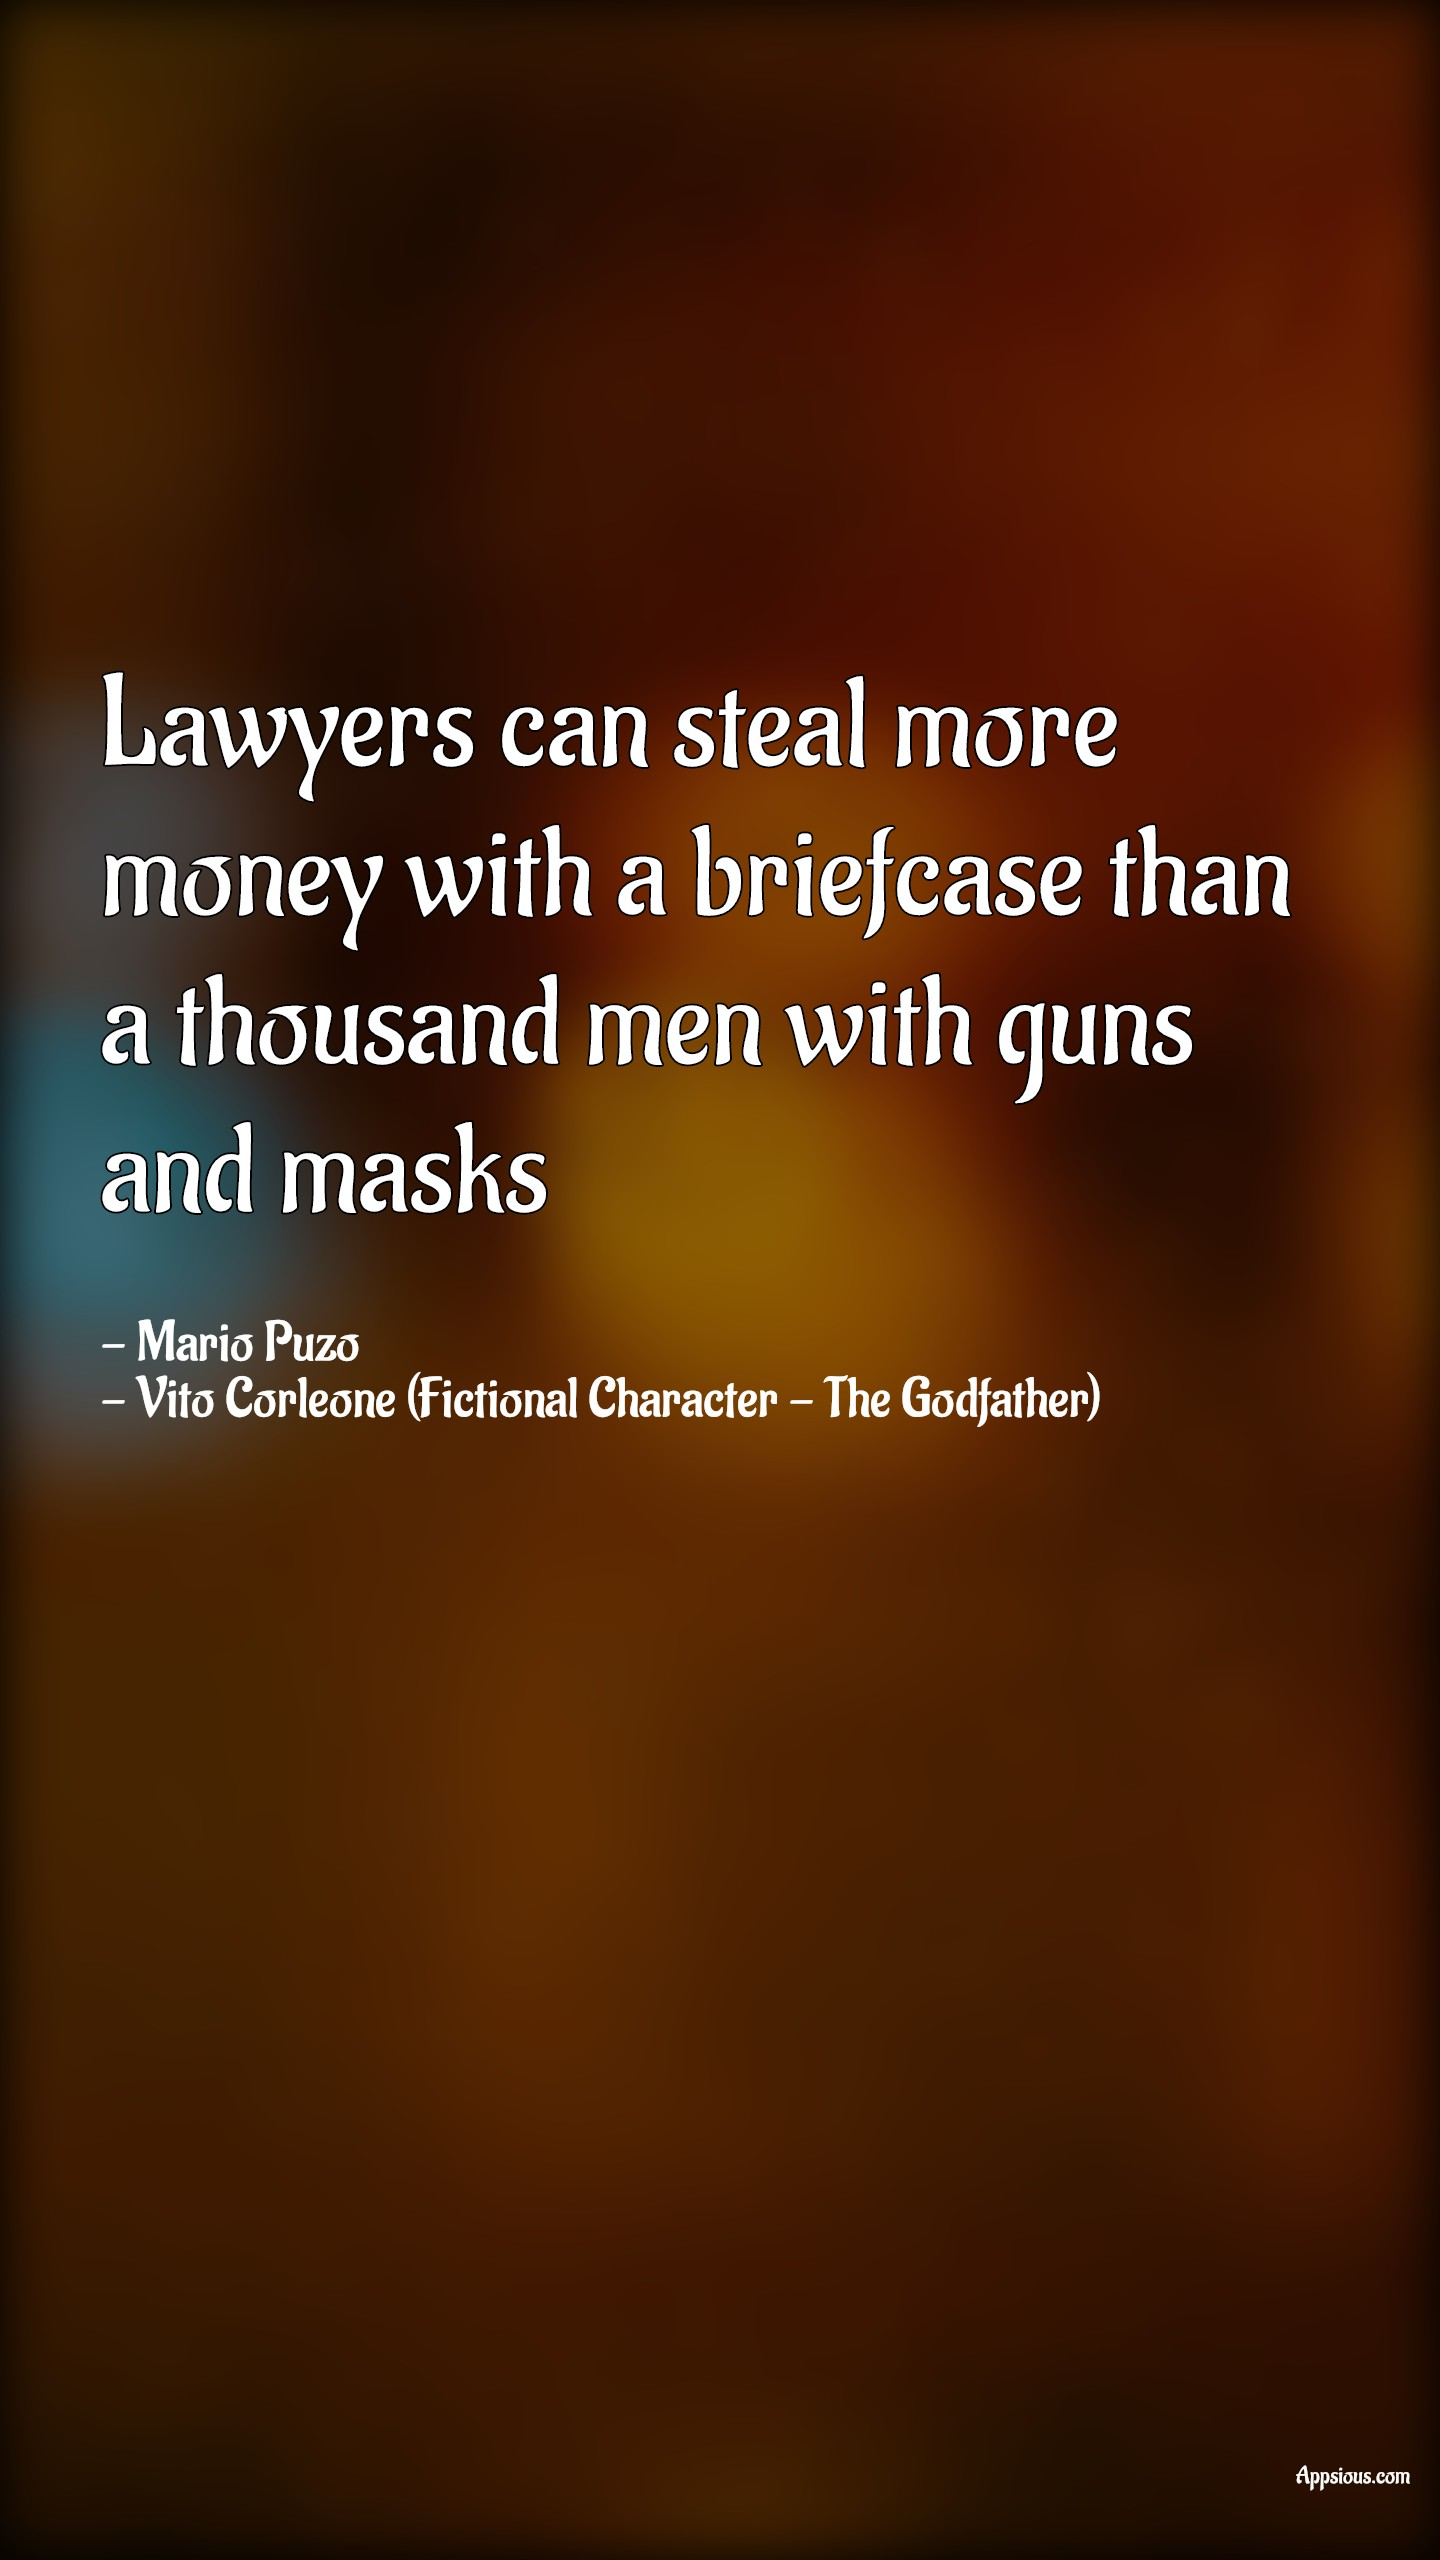 Lawyers can steal more money with a briefcase than a thousand men with guns and masks